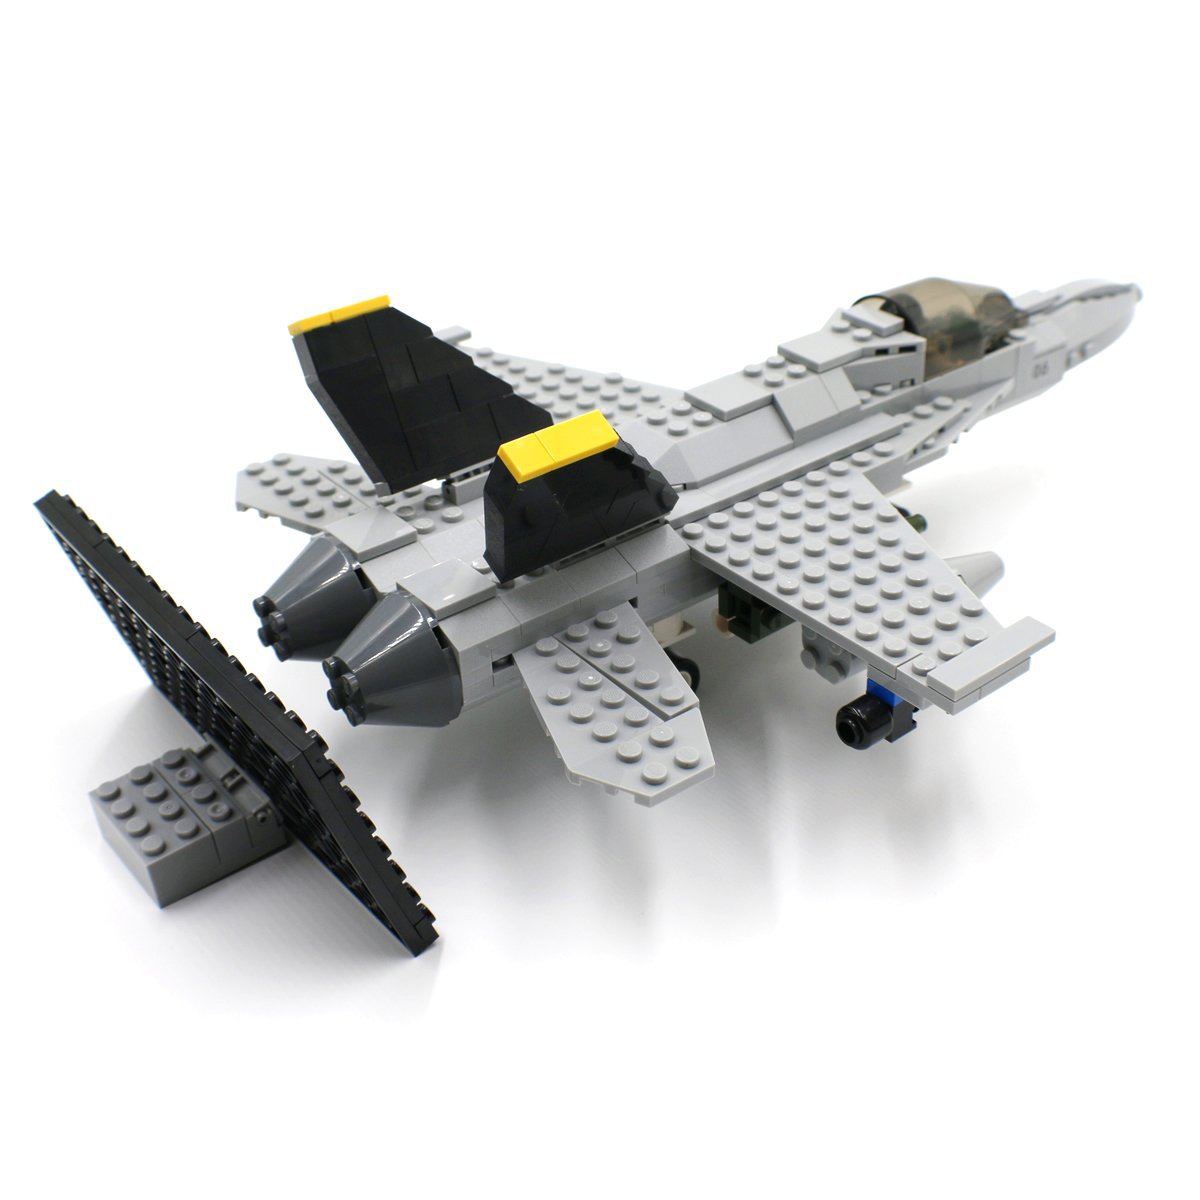 Hornet US army F A 18 Military Building Block Plane  Lego Compatible     Hornet US army F A 18 Military Building Block Plane  Lego Compatible Toys